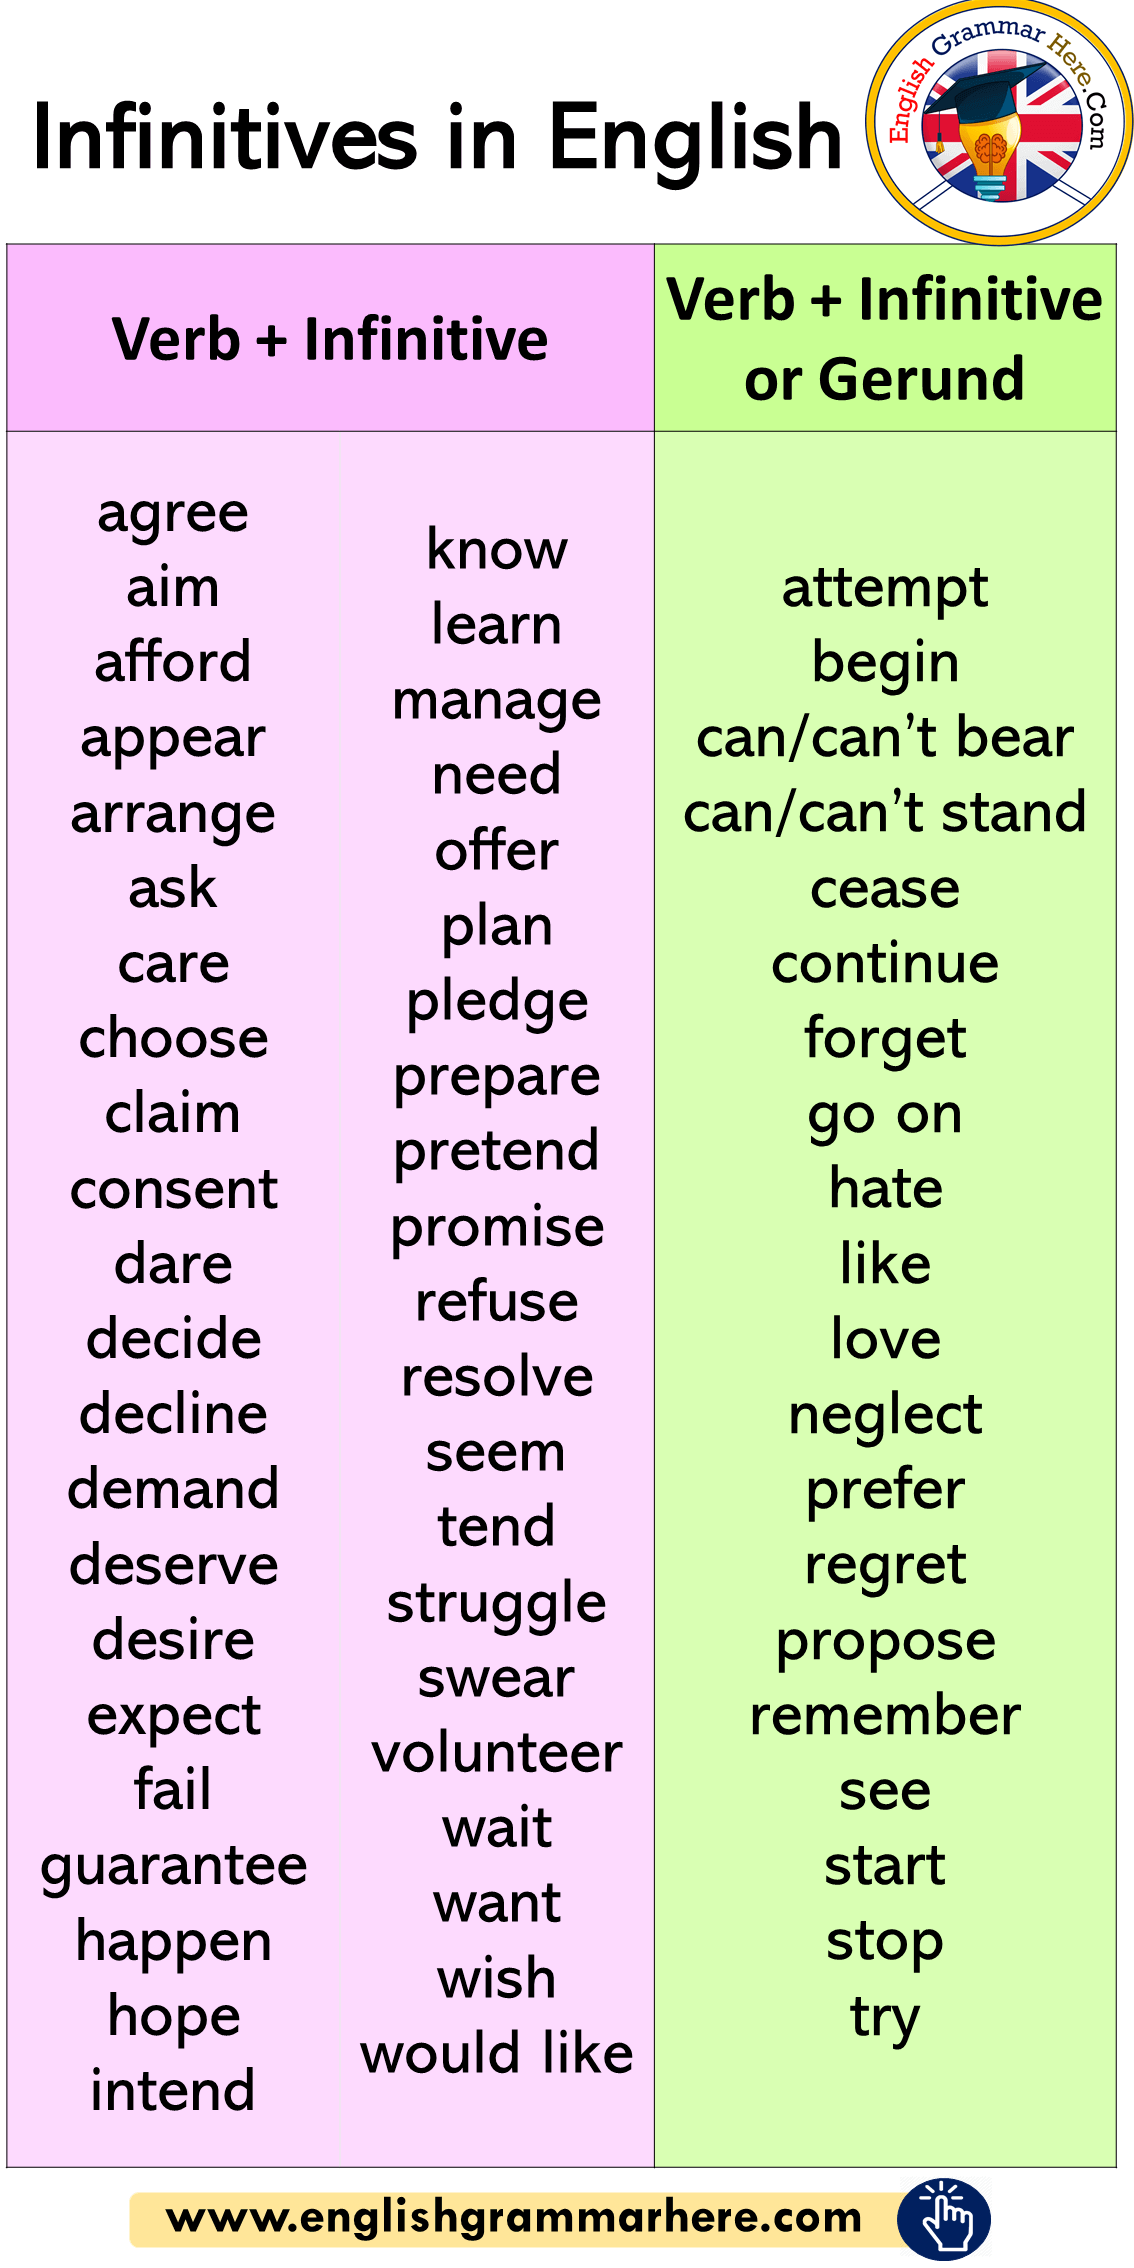 Infinitives in English, How To use Infinitives